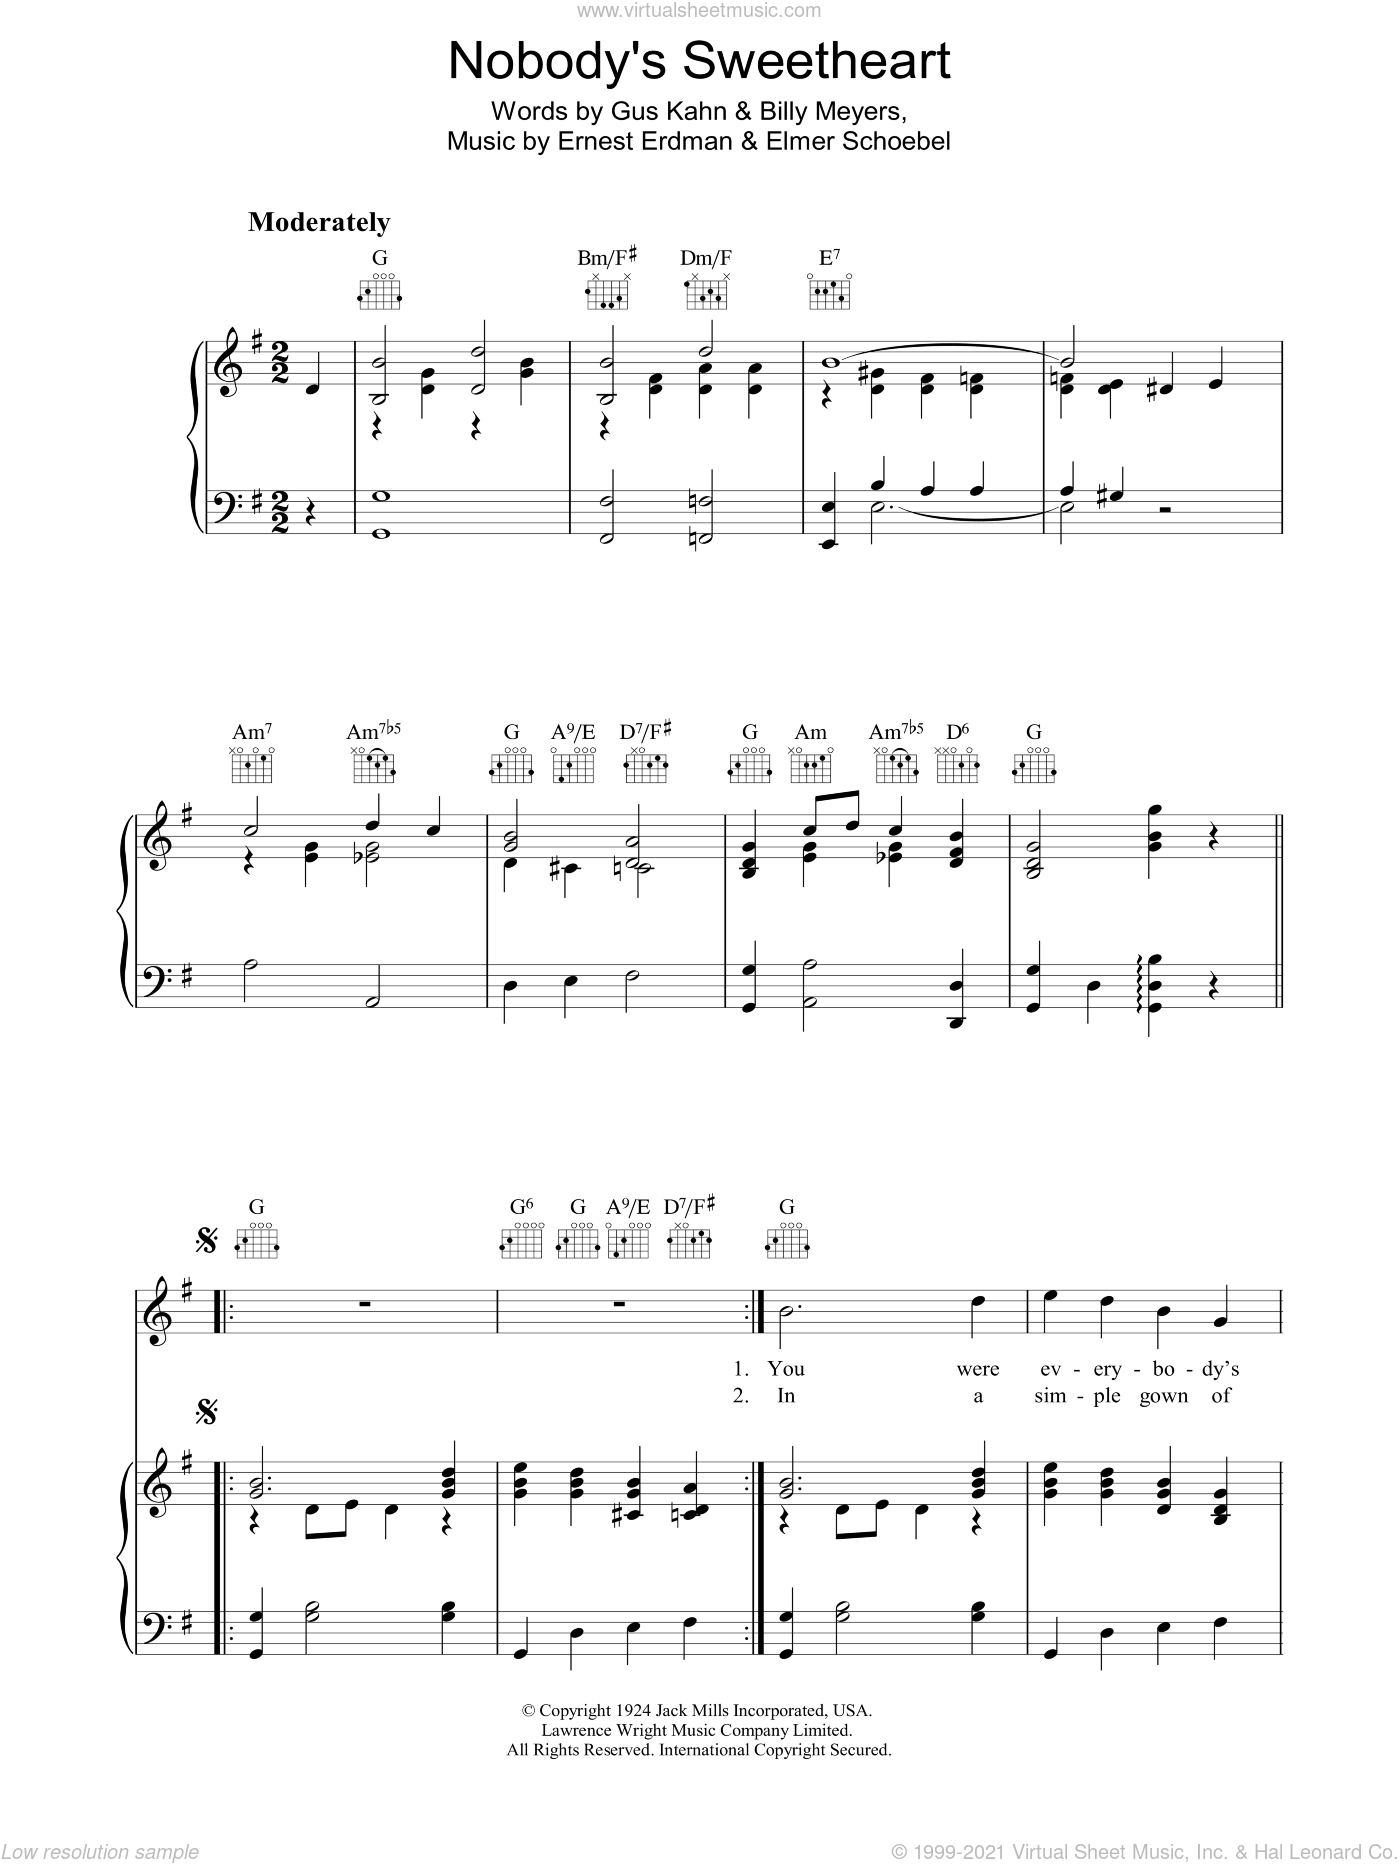 Nobody's Sweetheart sheet music for voice, piano or guitar by Gus Kahn, Billy Meyers, Elmer Schoebel and Ernie Erdman, intermediate voice, piano or guitar. Score Image Preview.